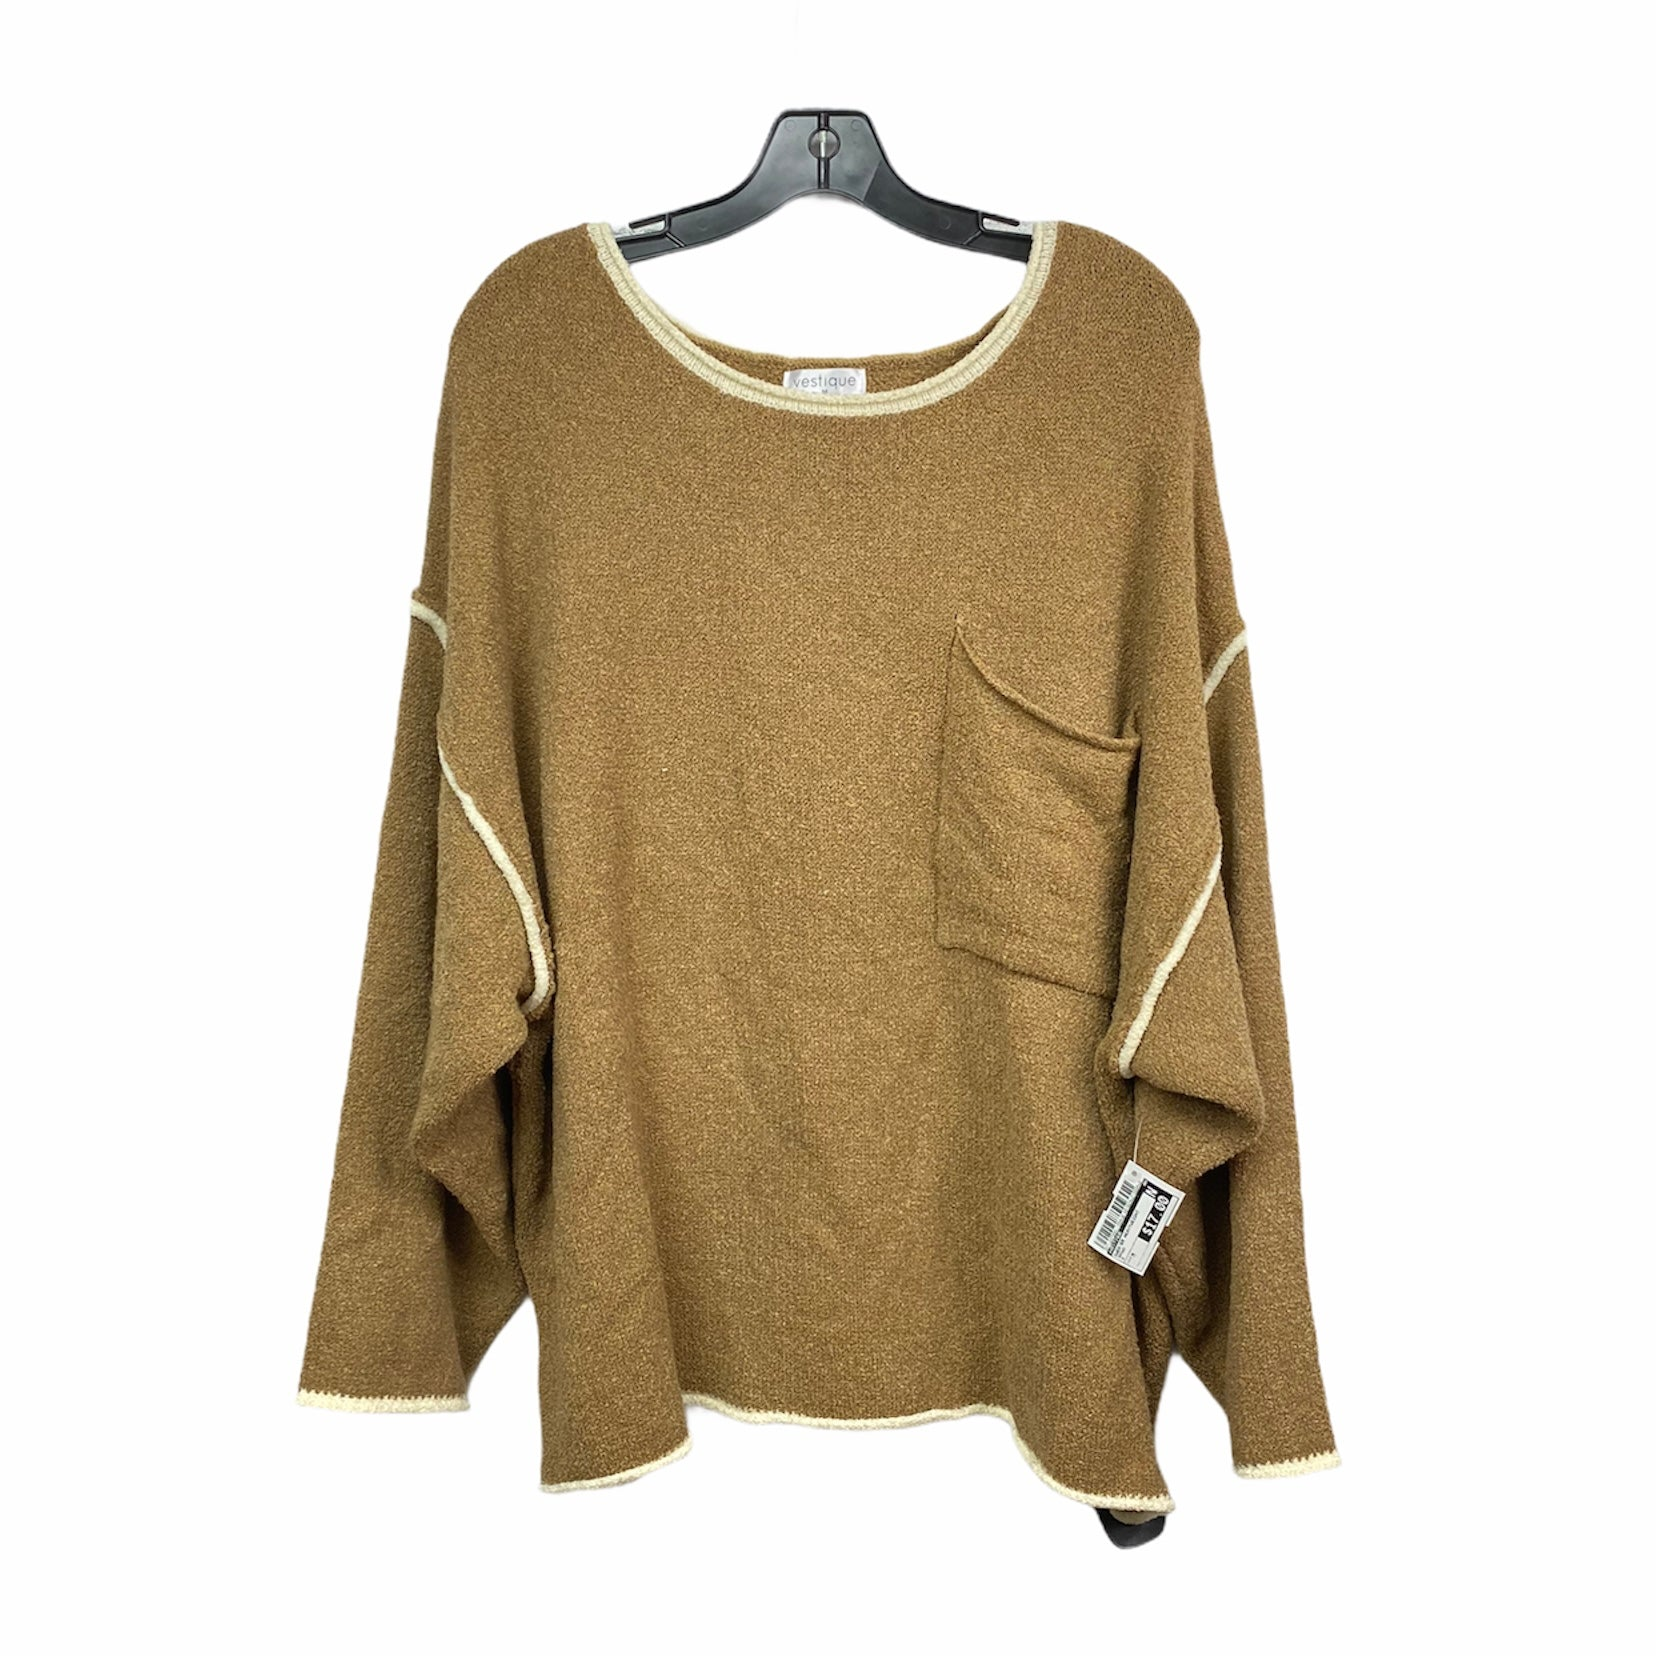 Primary Photo - BRAND: VESTIQUE <BR>STYLE: SWEATER HEAVYWEIGHT <BR>COLOR: BROWN <BR>SIZE: M <BR>SKU: 207-207234-7058